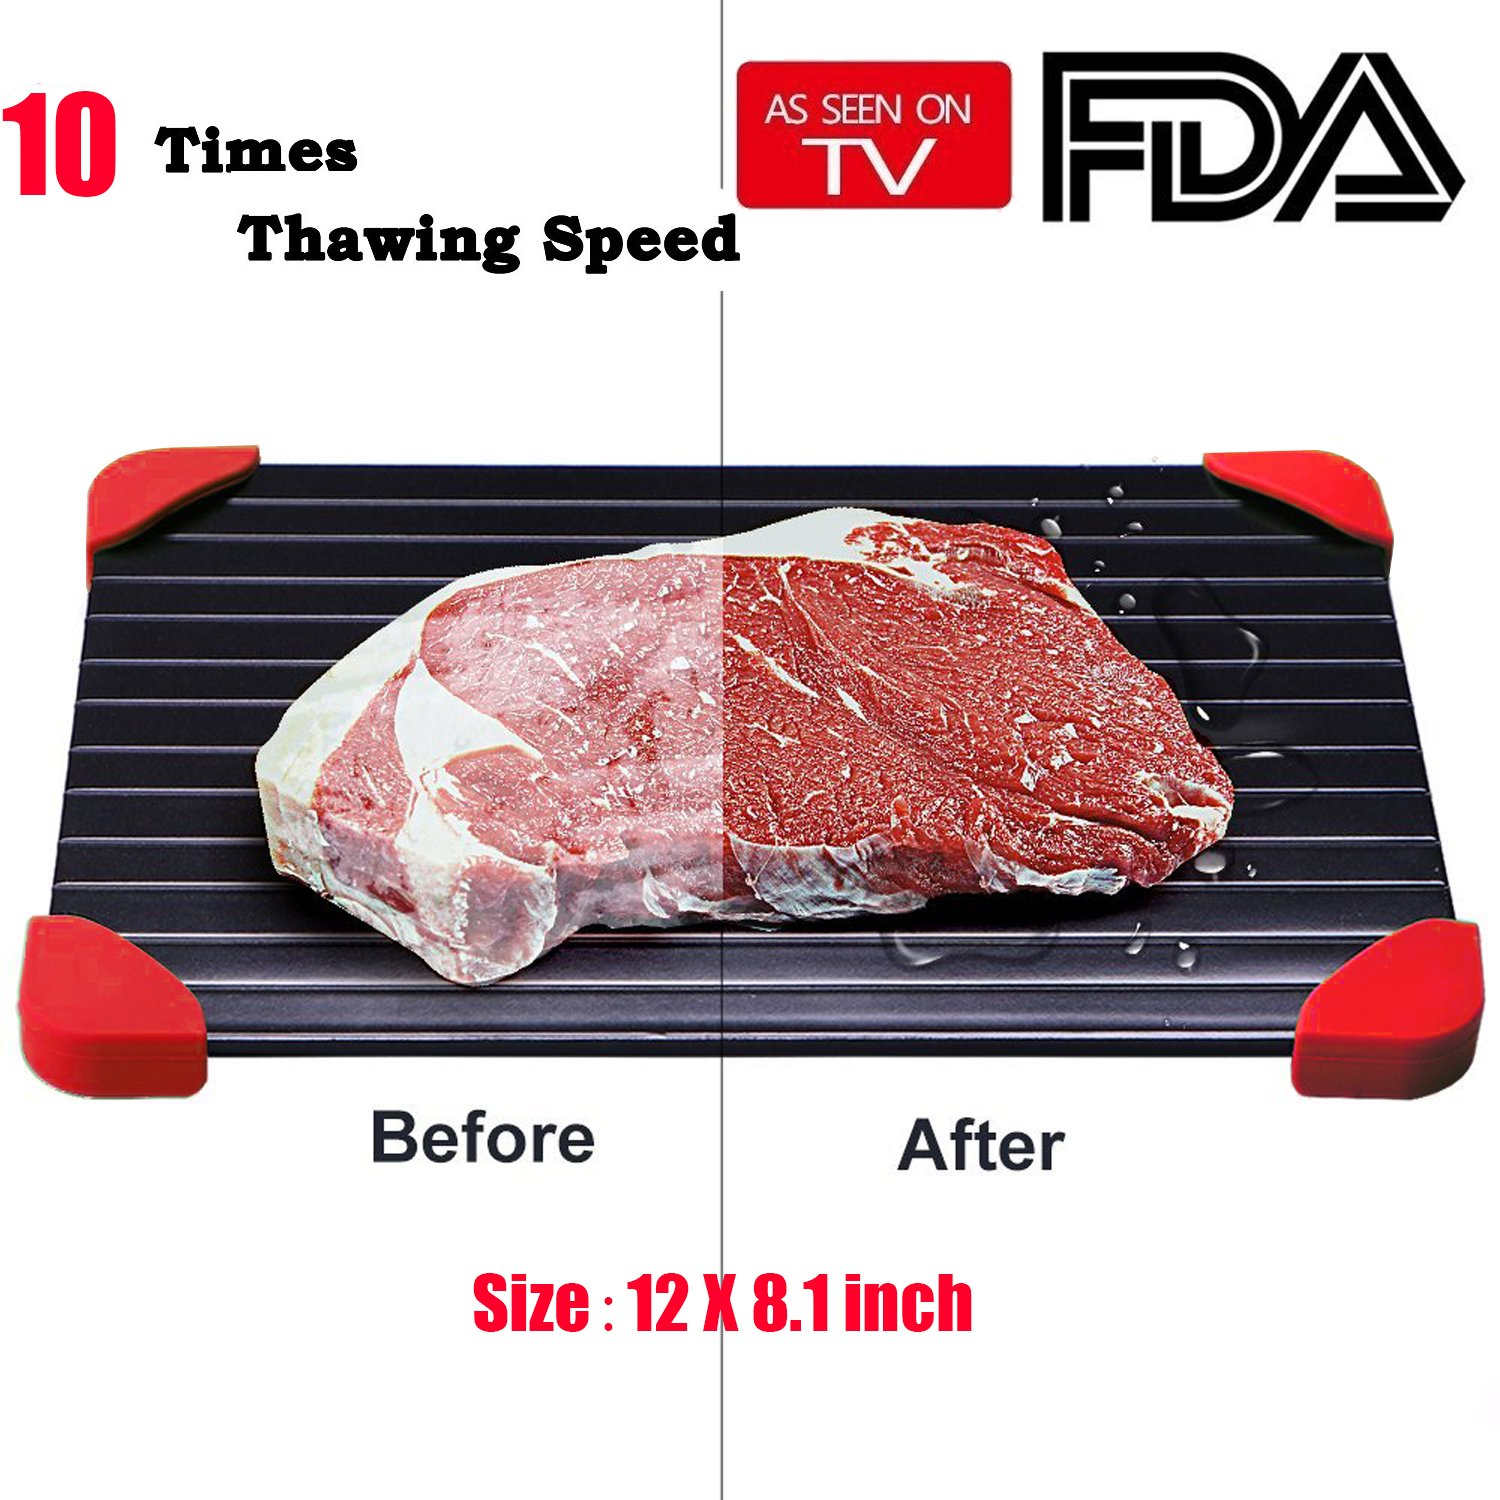 """Uardo Fast Defrosting Tray with Red Silicone Border,10 Times Thawing Speed,Meat Thawing Tray,Thaws Frozen Food Faster The Quicker and Safest Way to Defrost Steak or Frozen Food Quickly(12"""" x 8.1"""")"""